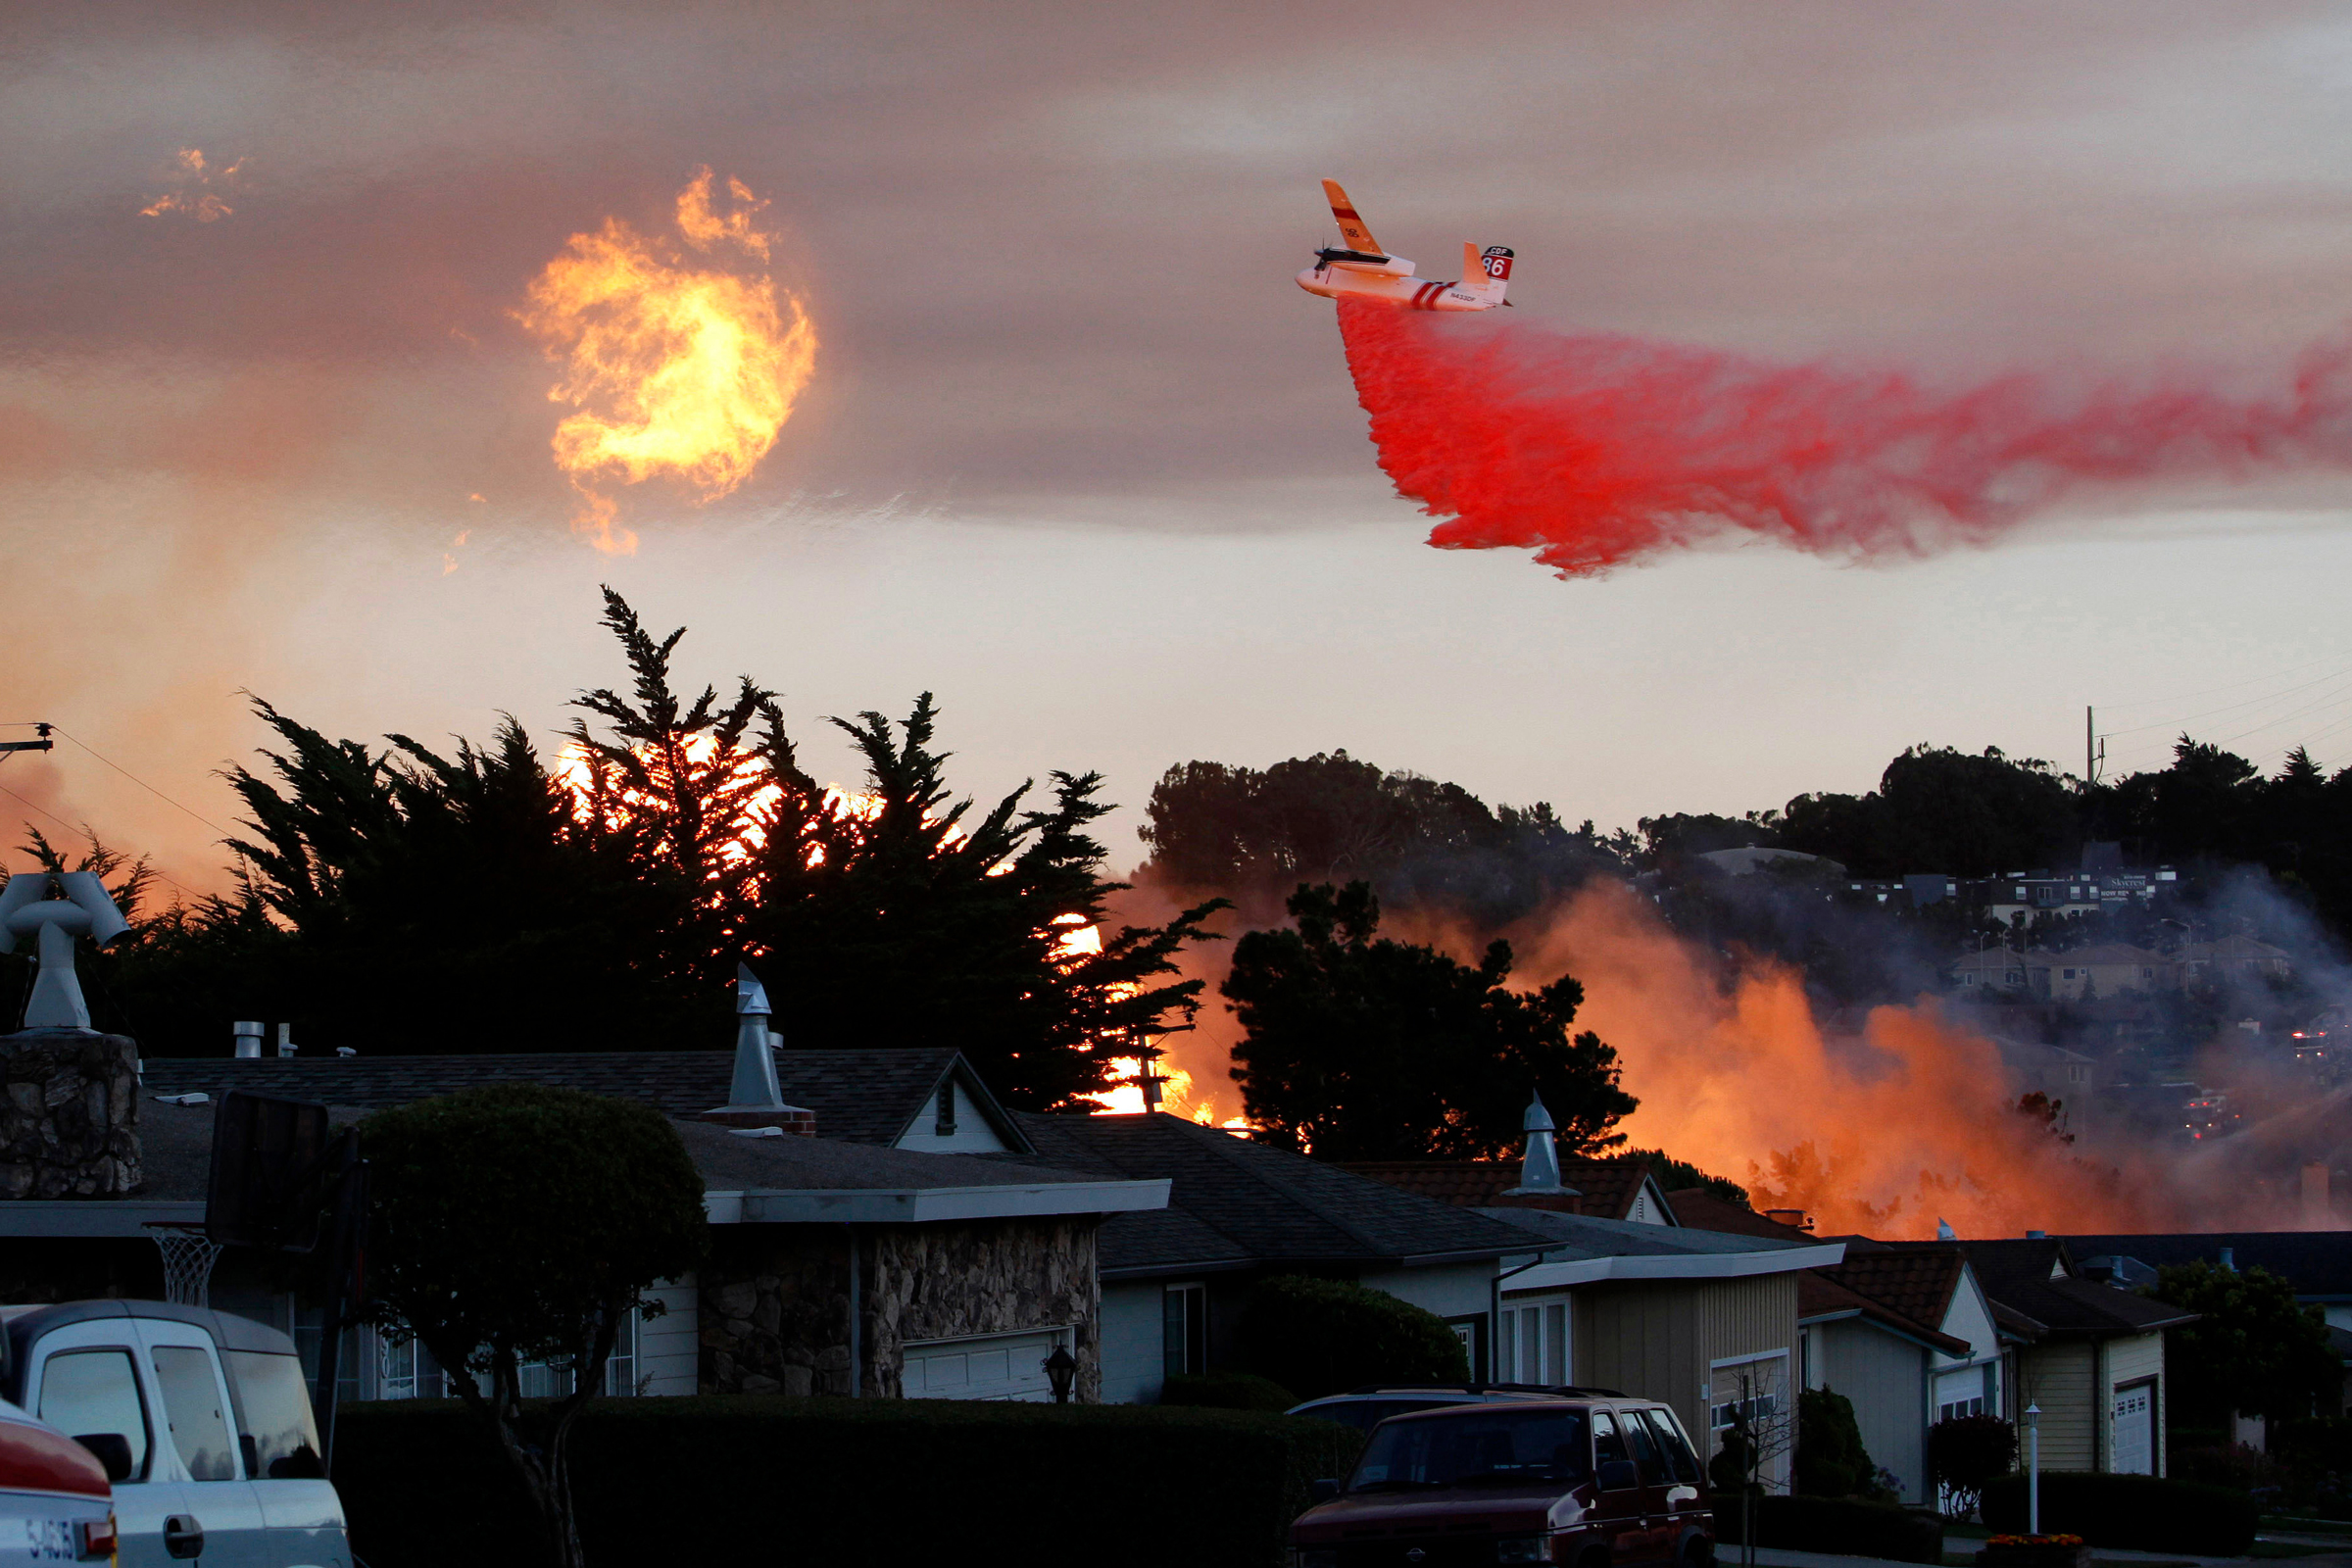 A massive fire following a pipeline explosion roars through a mostly residential neighborhood in San Bruno, Calif. One of the country's largest utility companies is set to face a jury in a criminal trial accusing it of misleading investigators in the wake of a deadly pipeline explosion in the San Francisco Bay Area. The September 2010 blast of a Pacific Gas & Electric Co. natural gas pipeline sent a giant plume of fire into the air in a neighborhood in San Bruno, killing eight people and destroying 38 homes. Opening arguments in the trial beganPipeline Explosion, San Bruno, USA